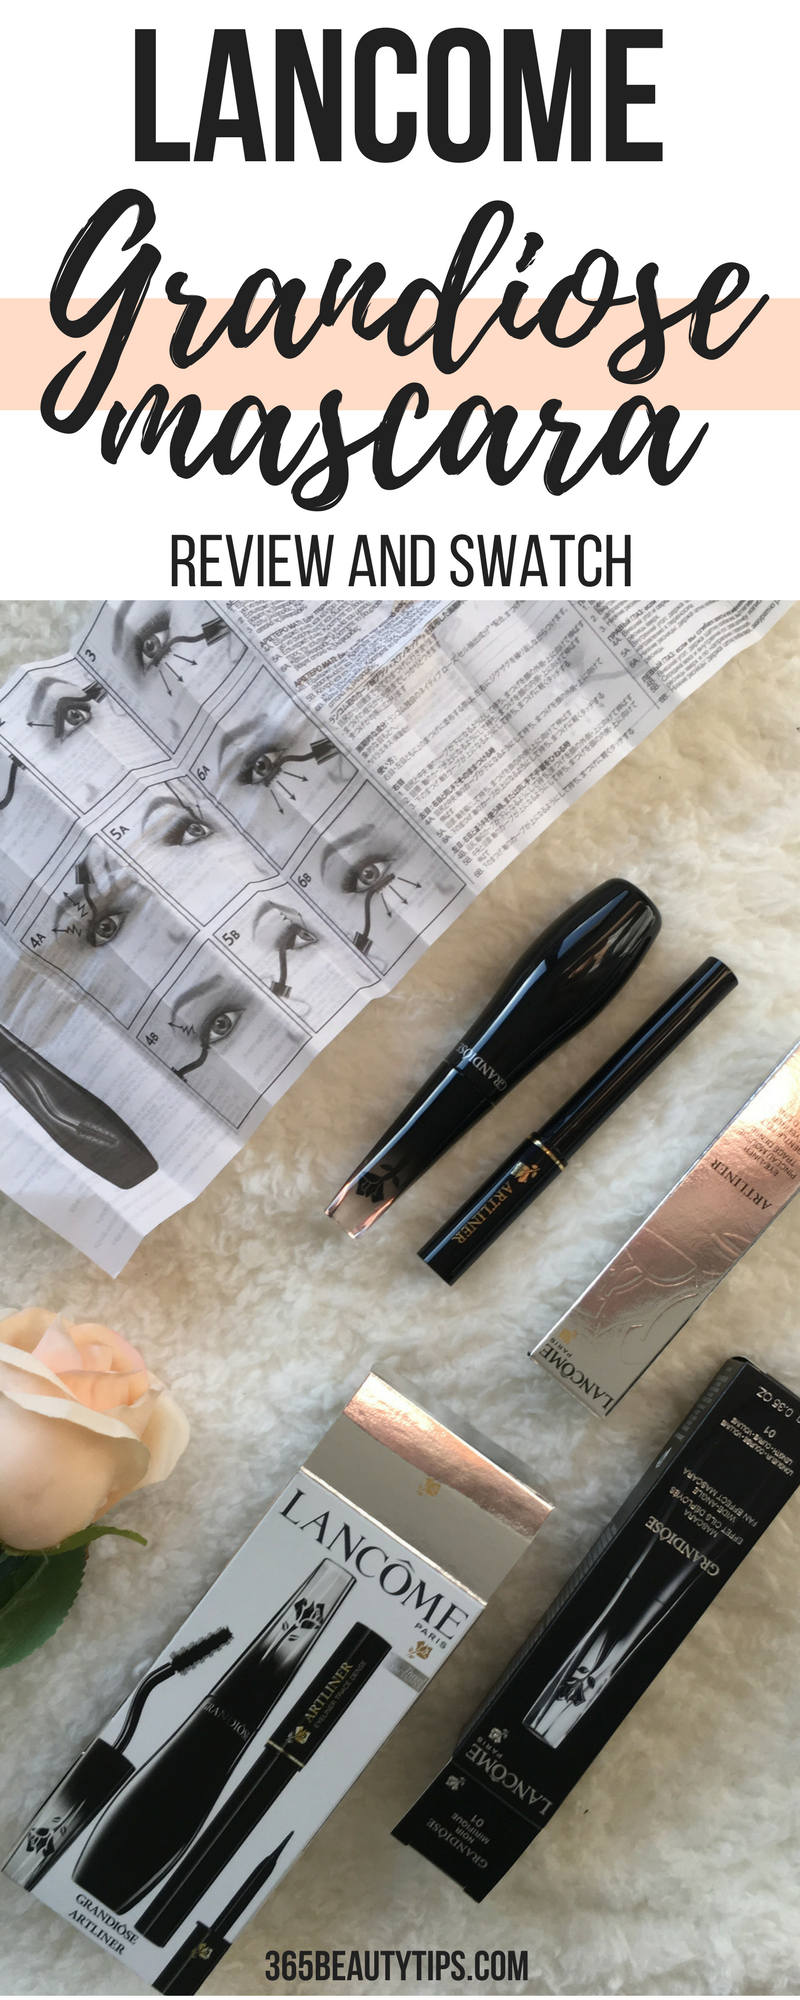 lancome-grandiose-mascara-review-and-swatch-365-beauty-tips-pin